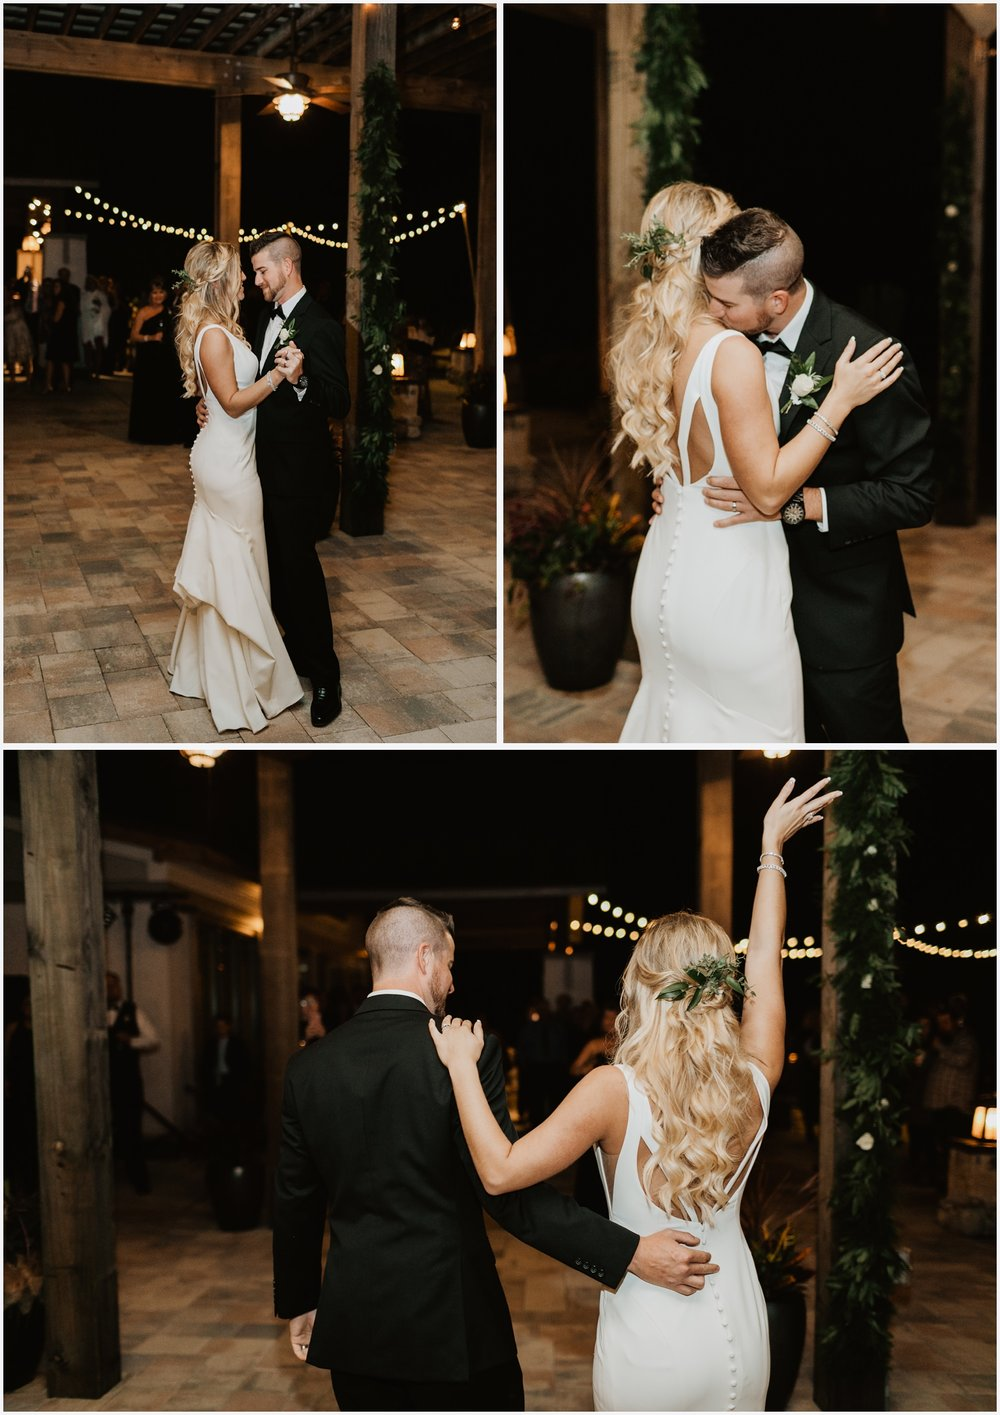 Bride and Groom's first dance at the Shark's Tooth Golf Club